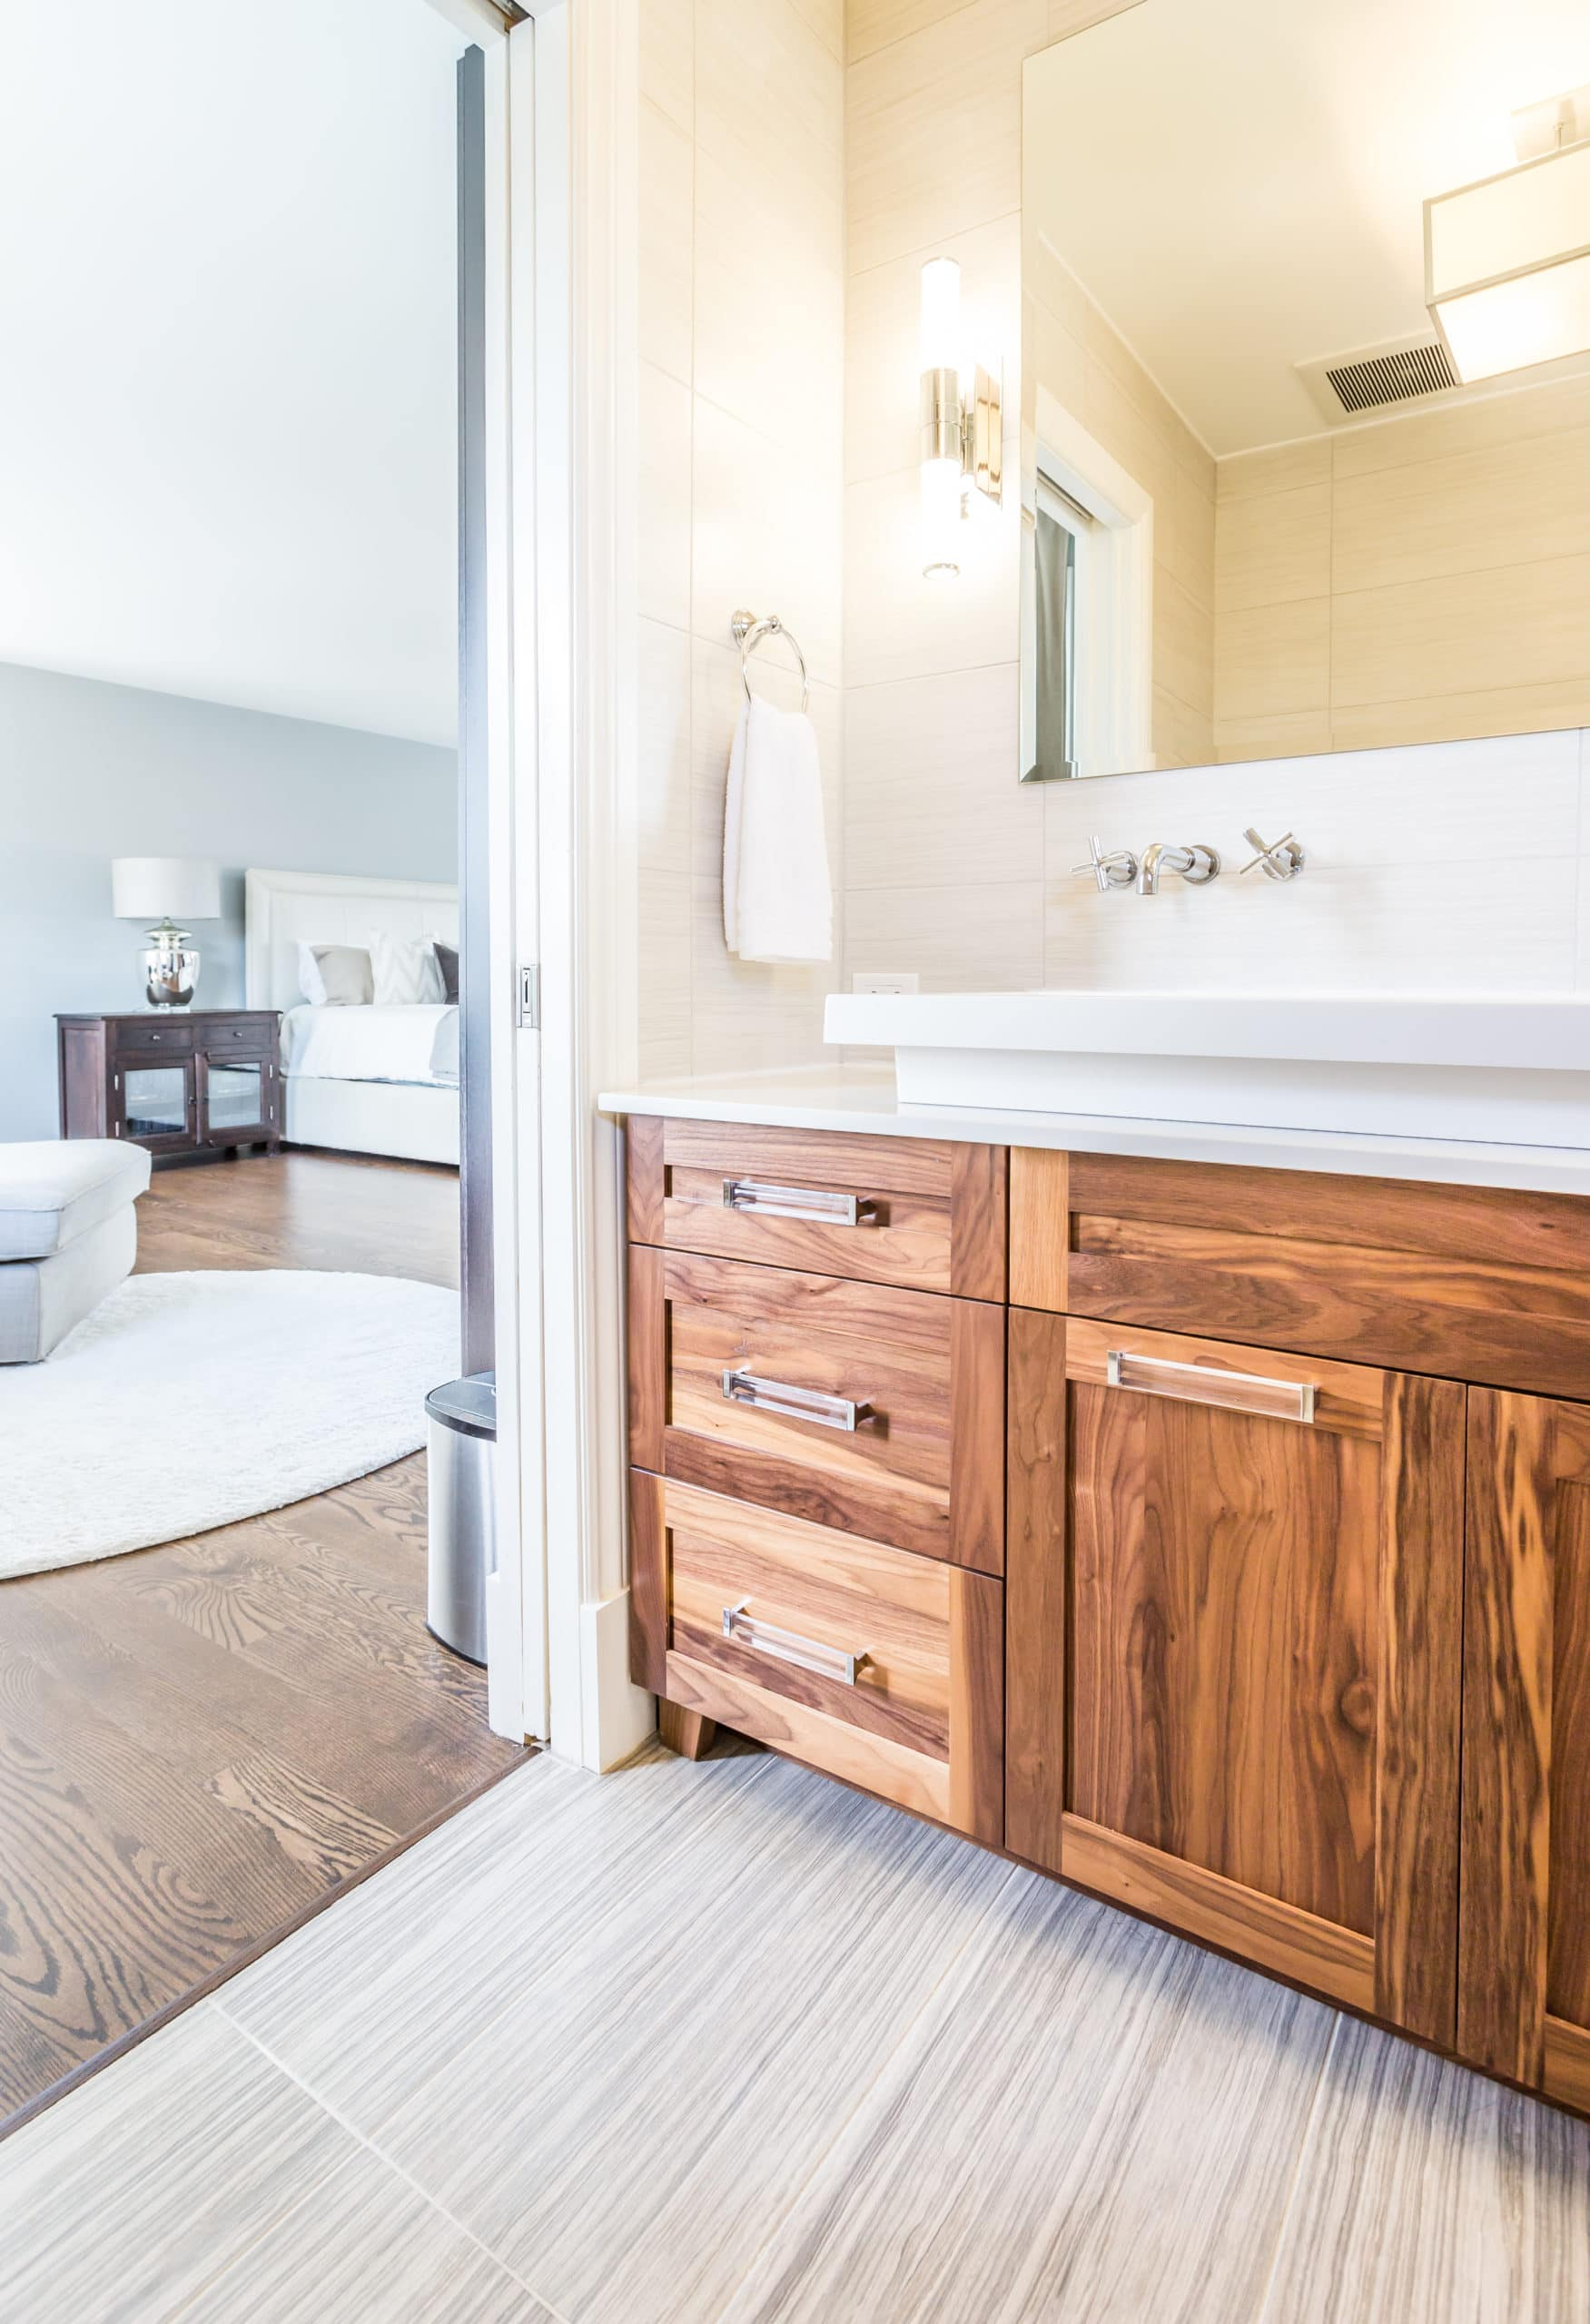 Clean bathroom with a focus on the sink